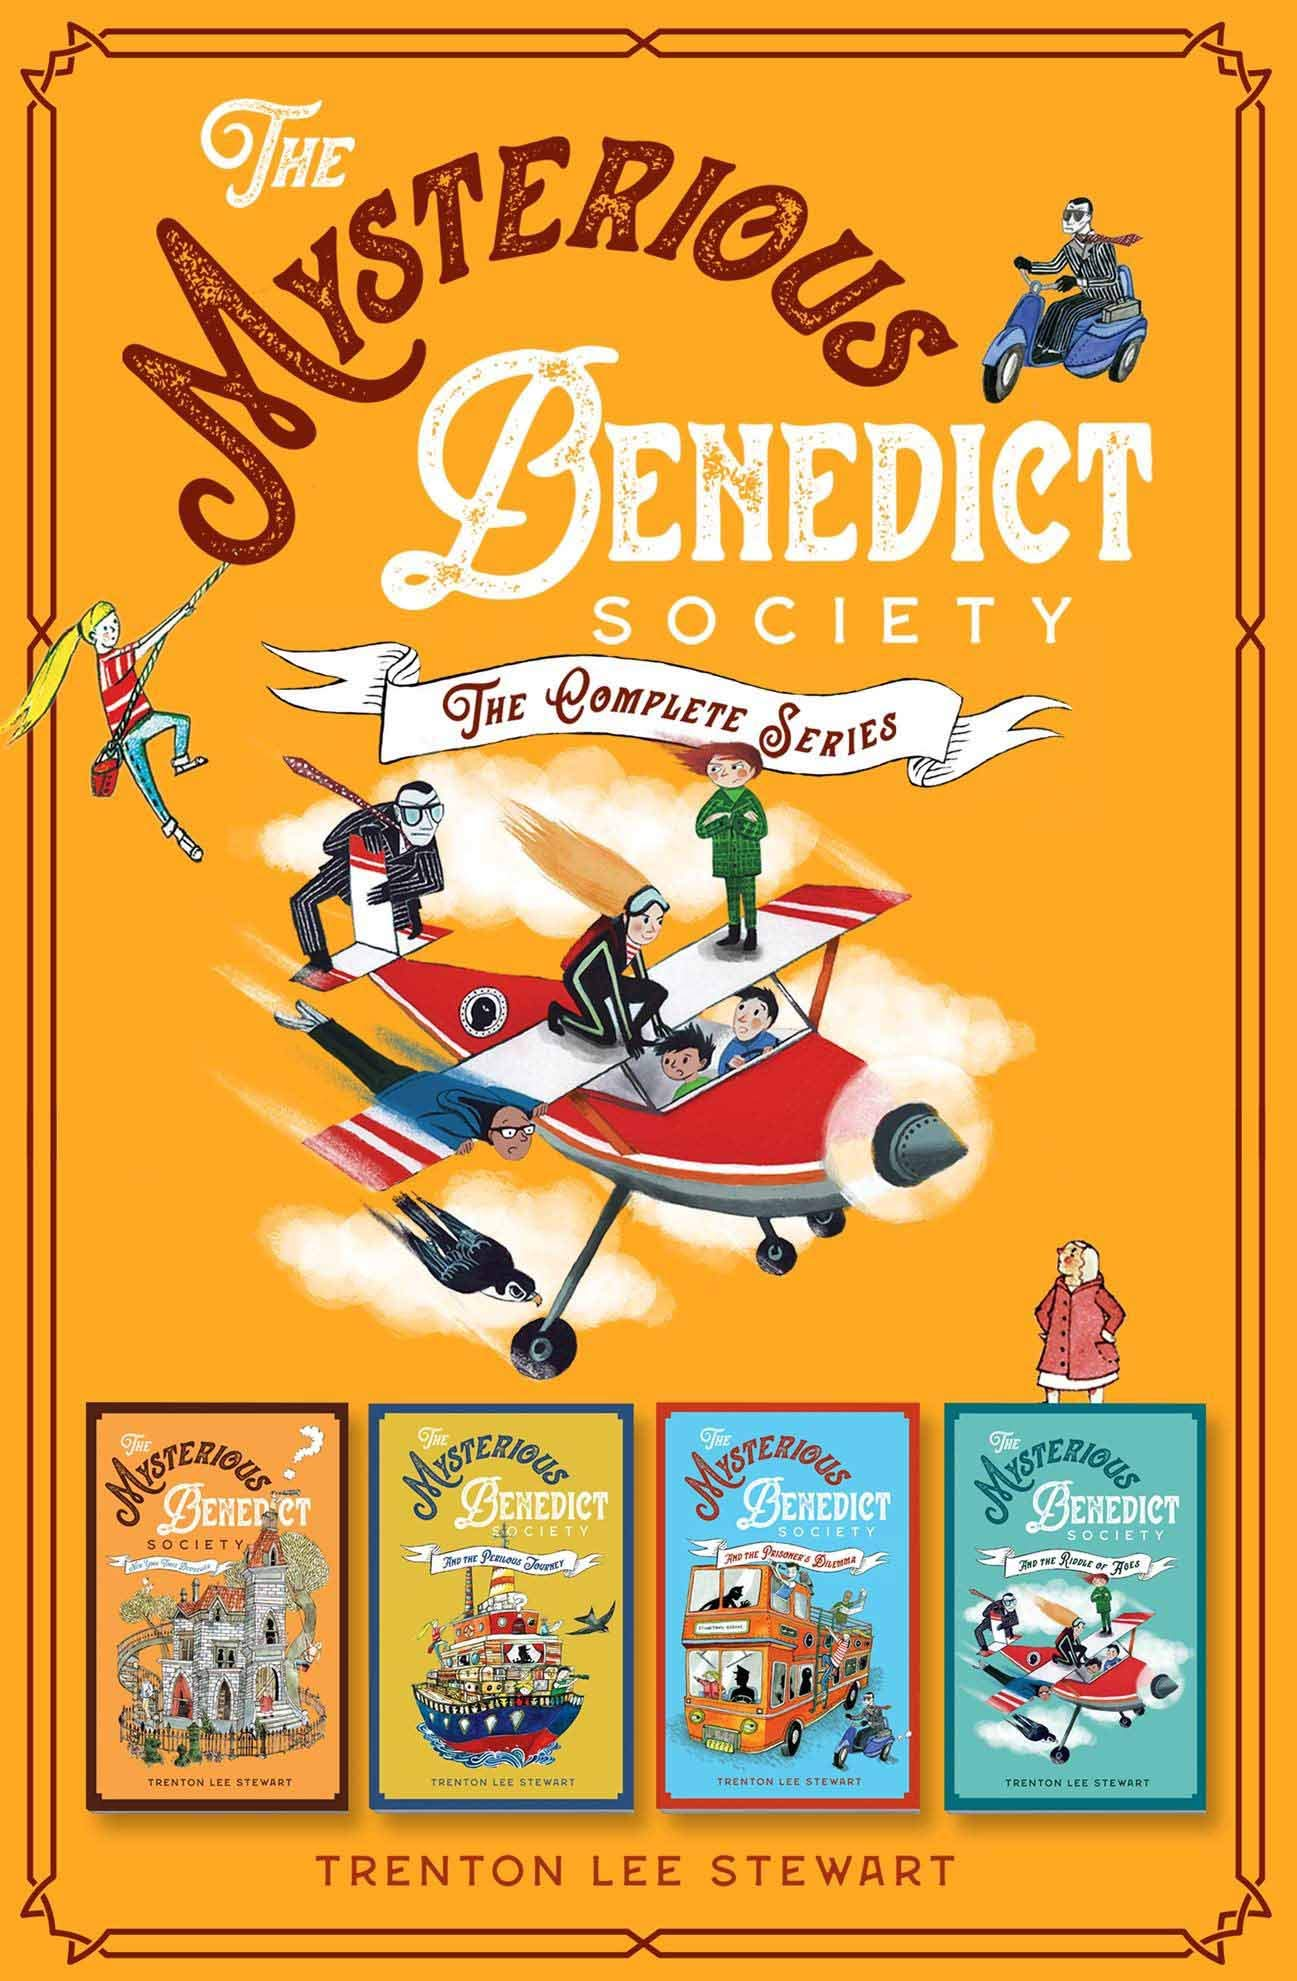 The Mysterious Benedict Society Complete Series (Books 1-4) ebook bundle